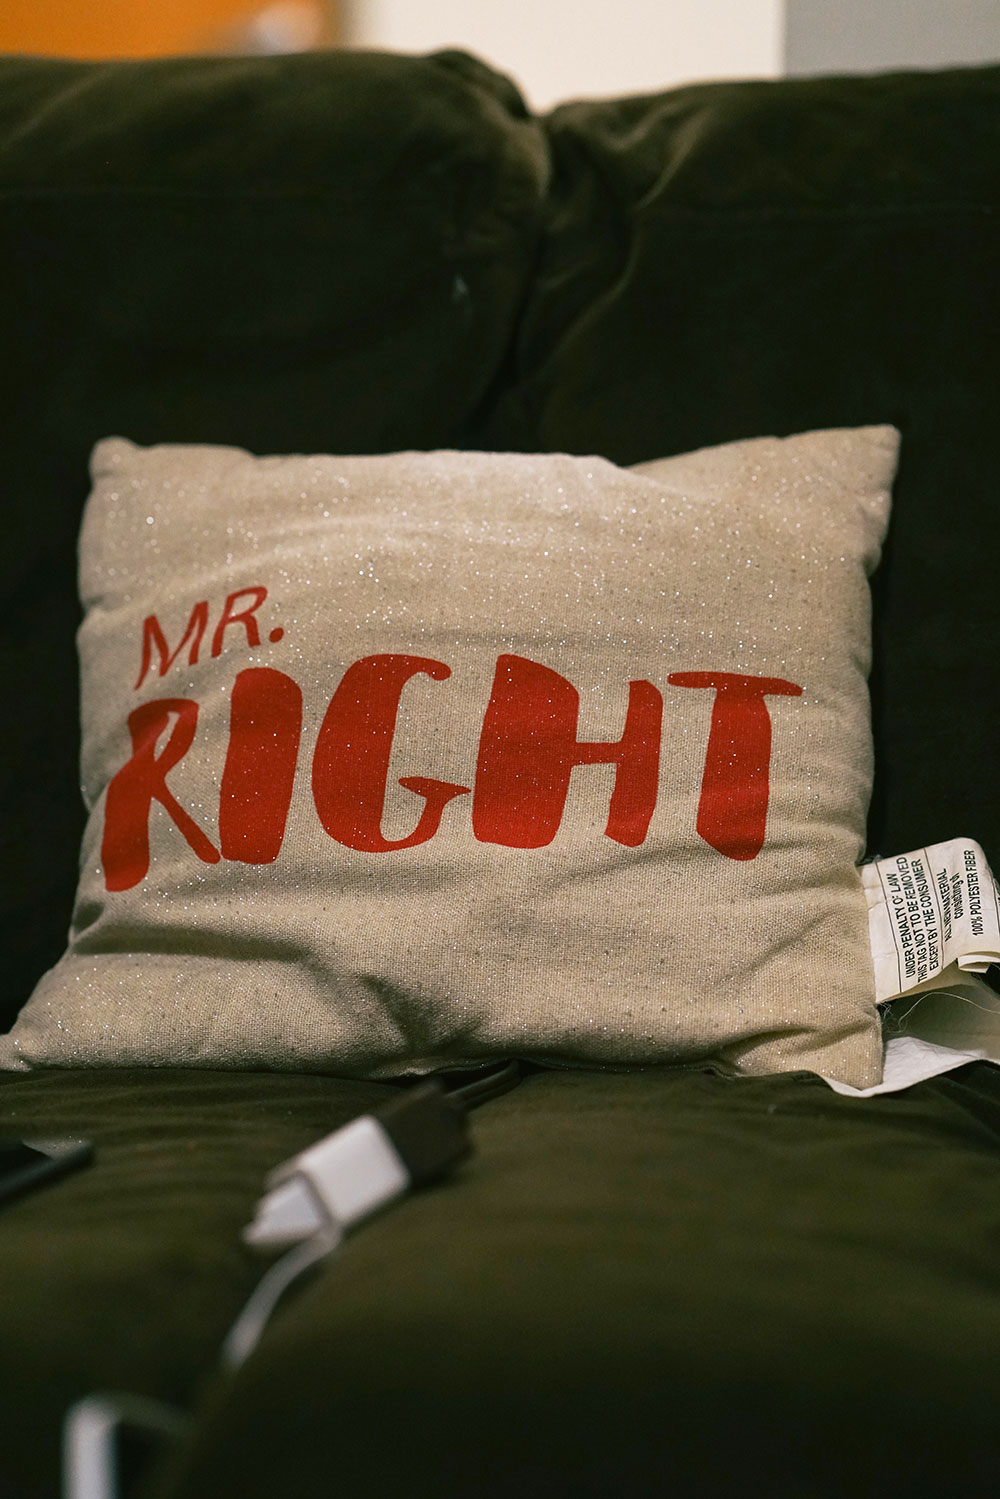 Robert bought this Mr. Right pillow to remind himself that he can overcome his past struggles and take on each day with confidence.